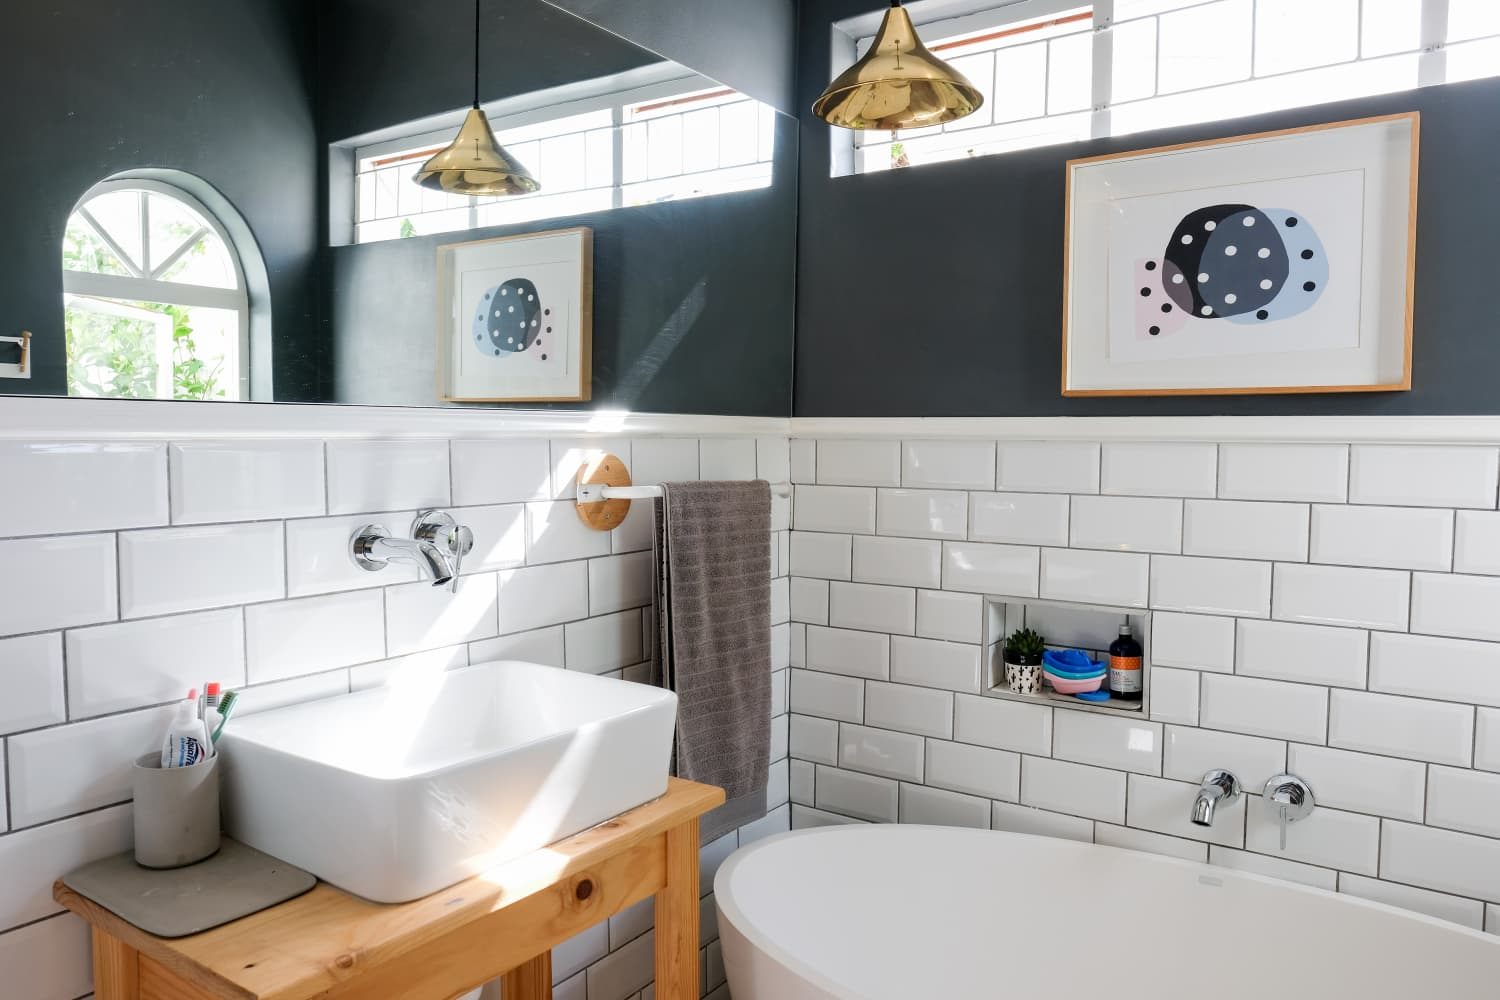 11 Things You Can Toss From Your Grown-Up Bathroom, According to Experts